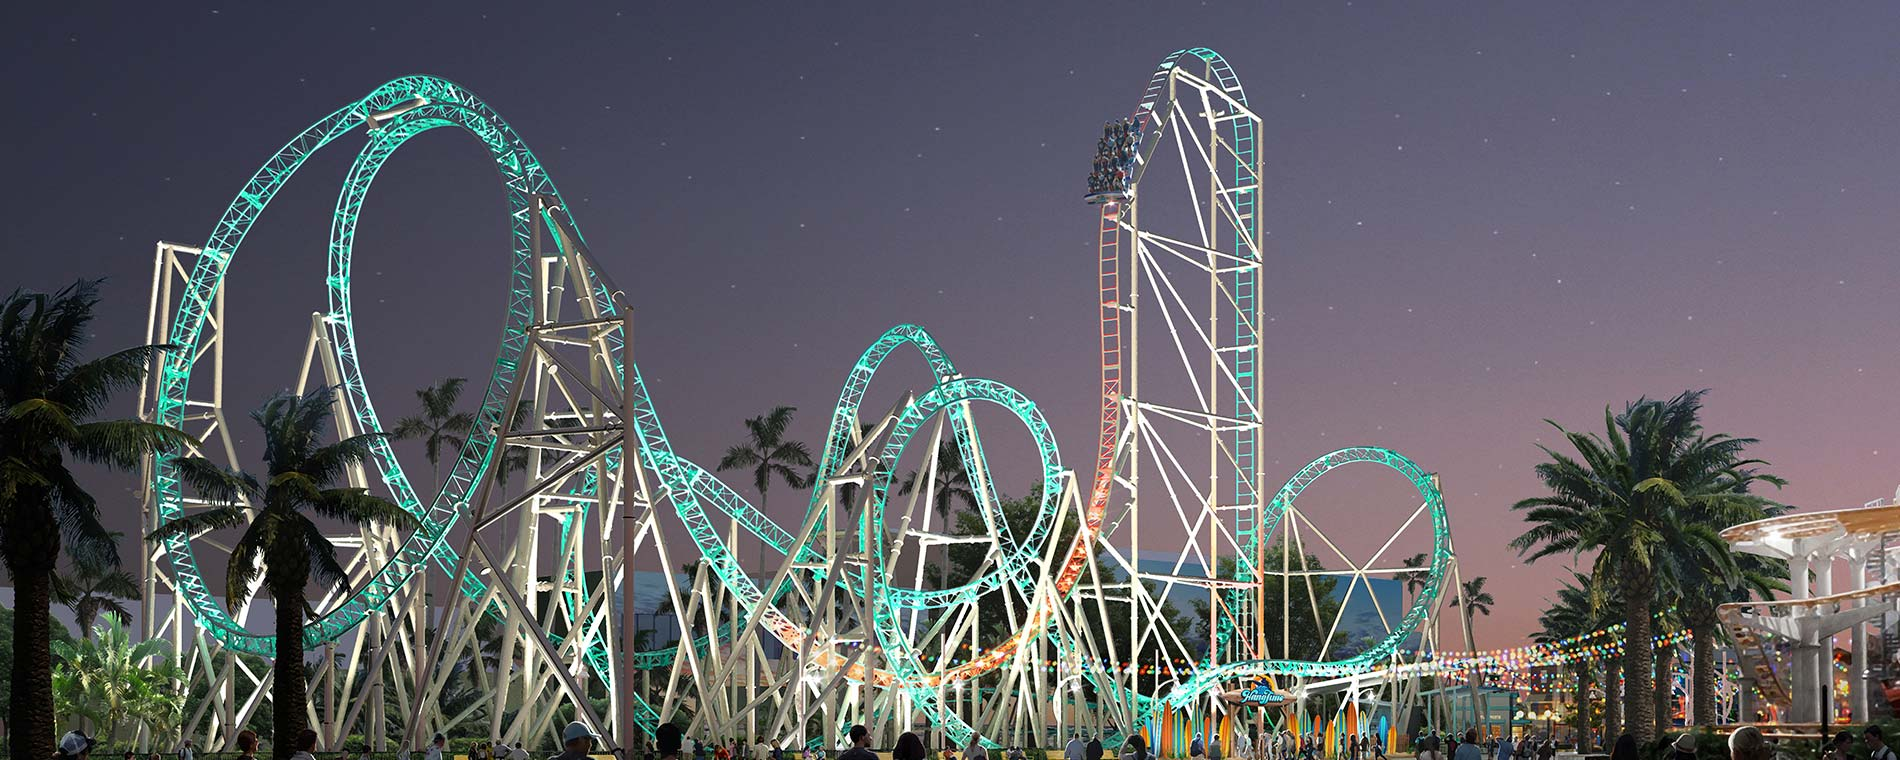 HangTime Grand Opening at Knott's Berry Farm